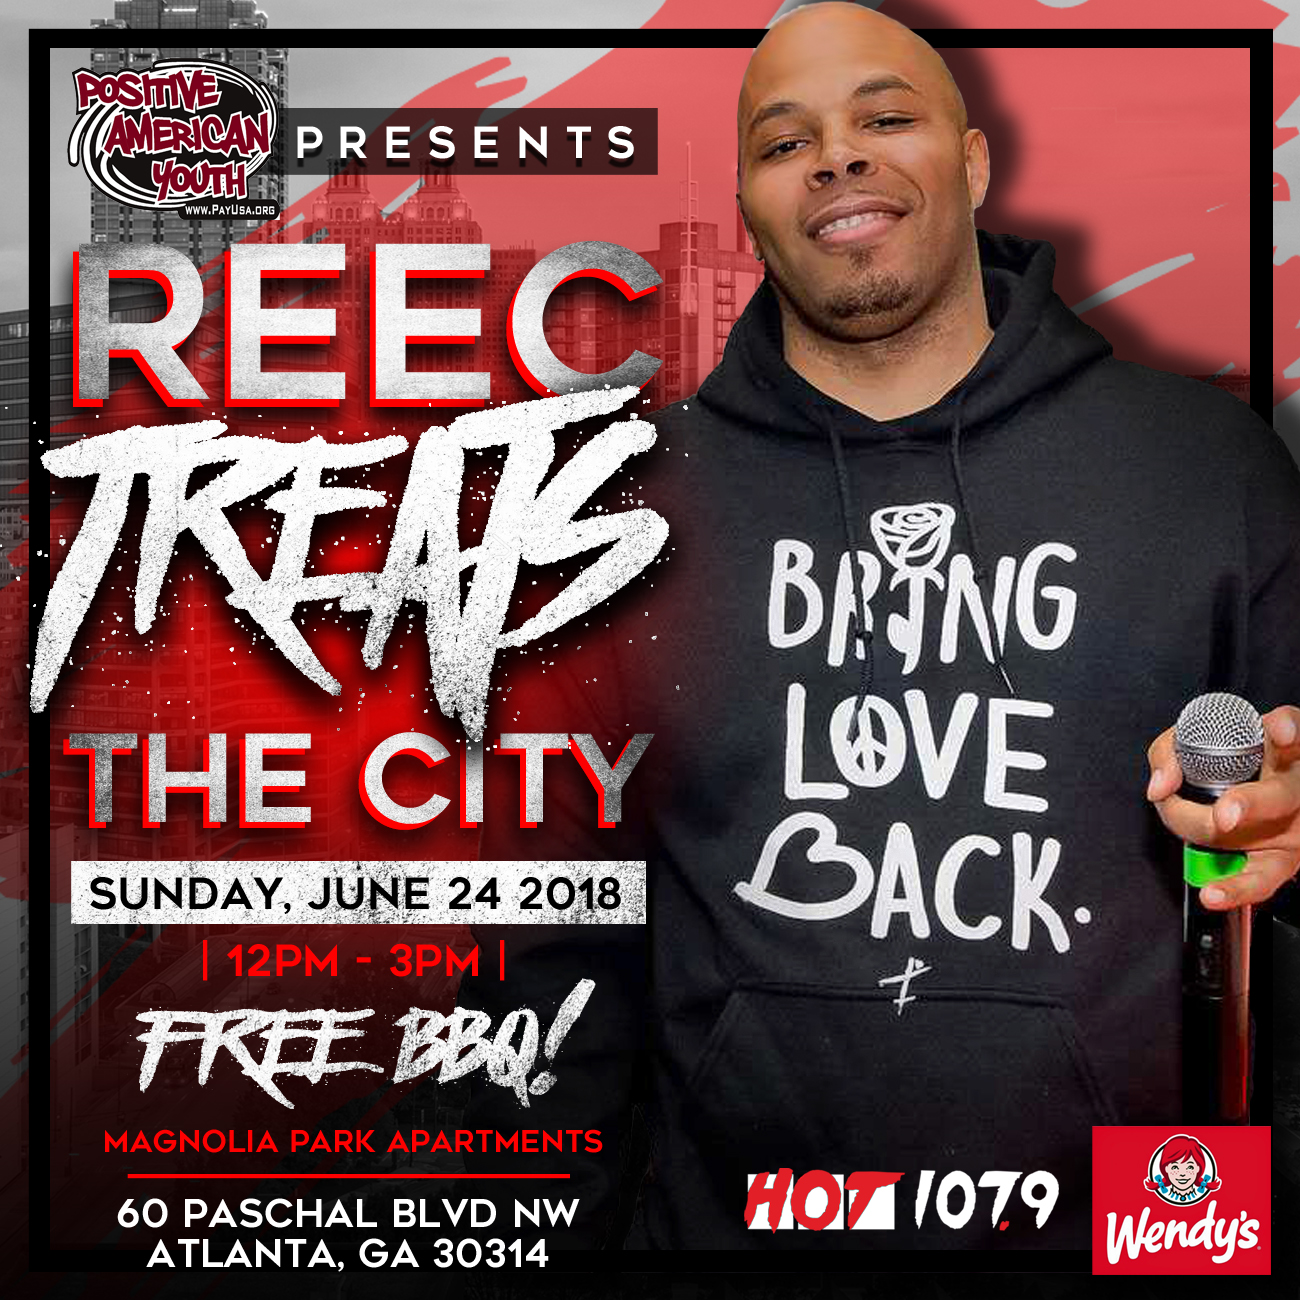 Reec Treats The City